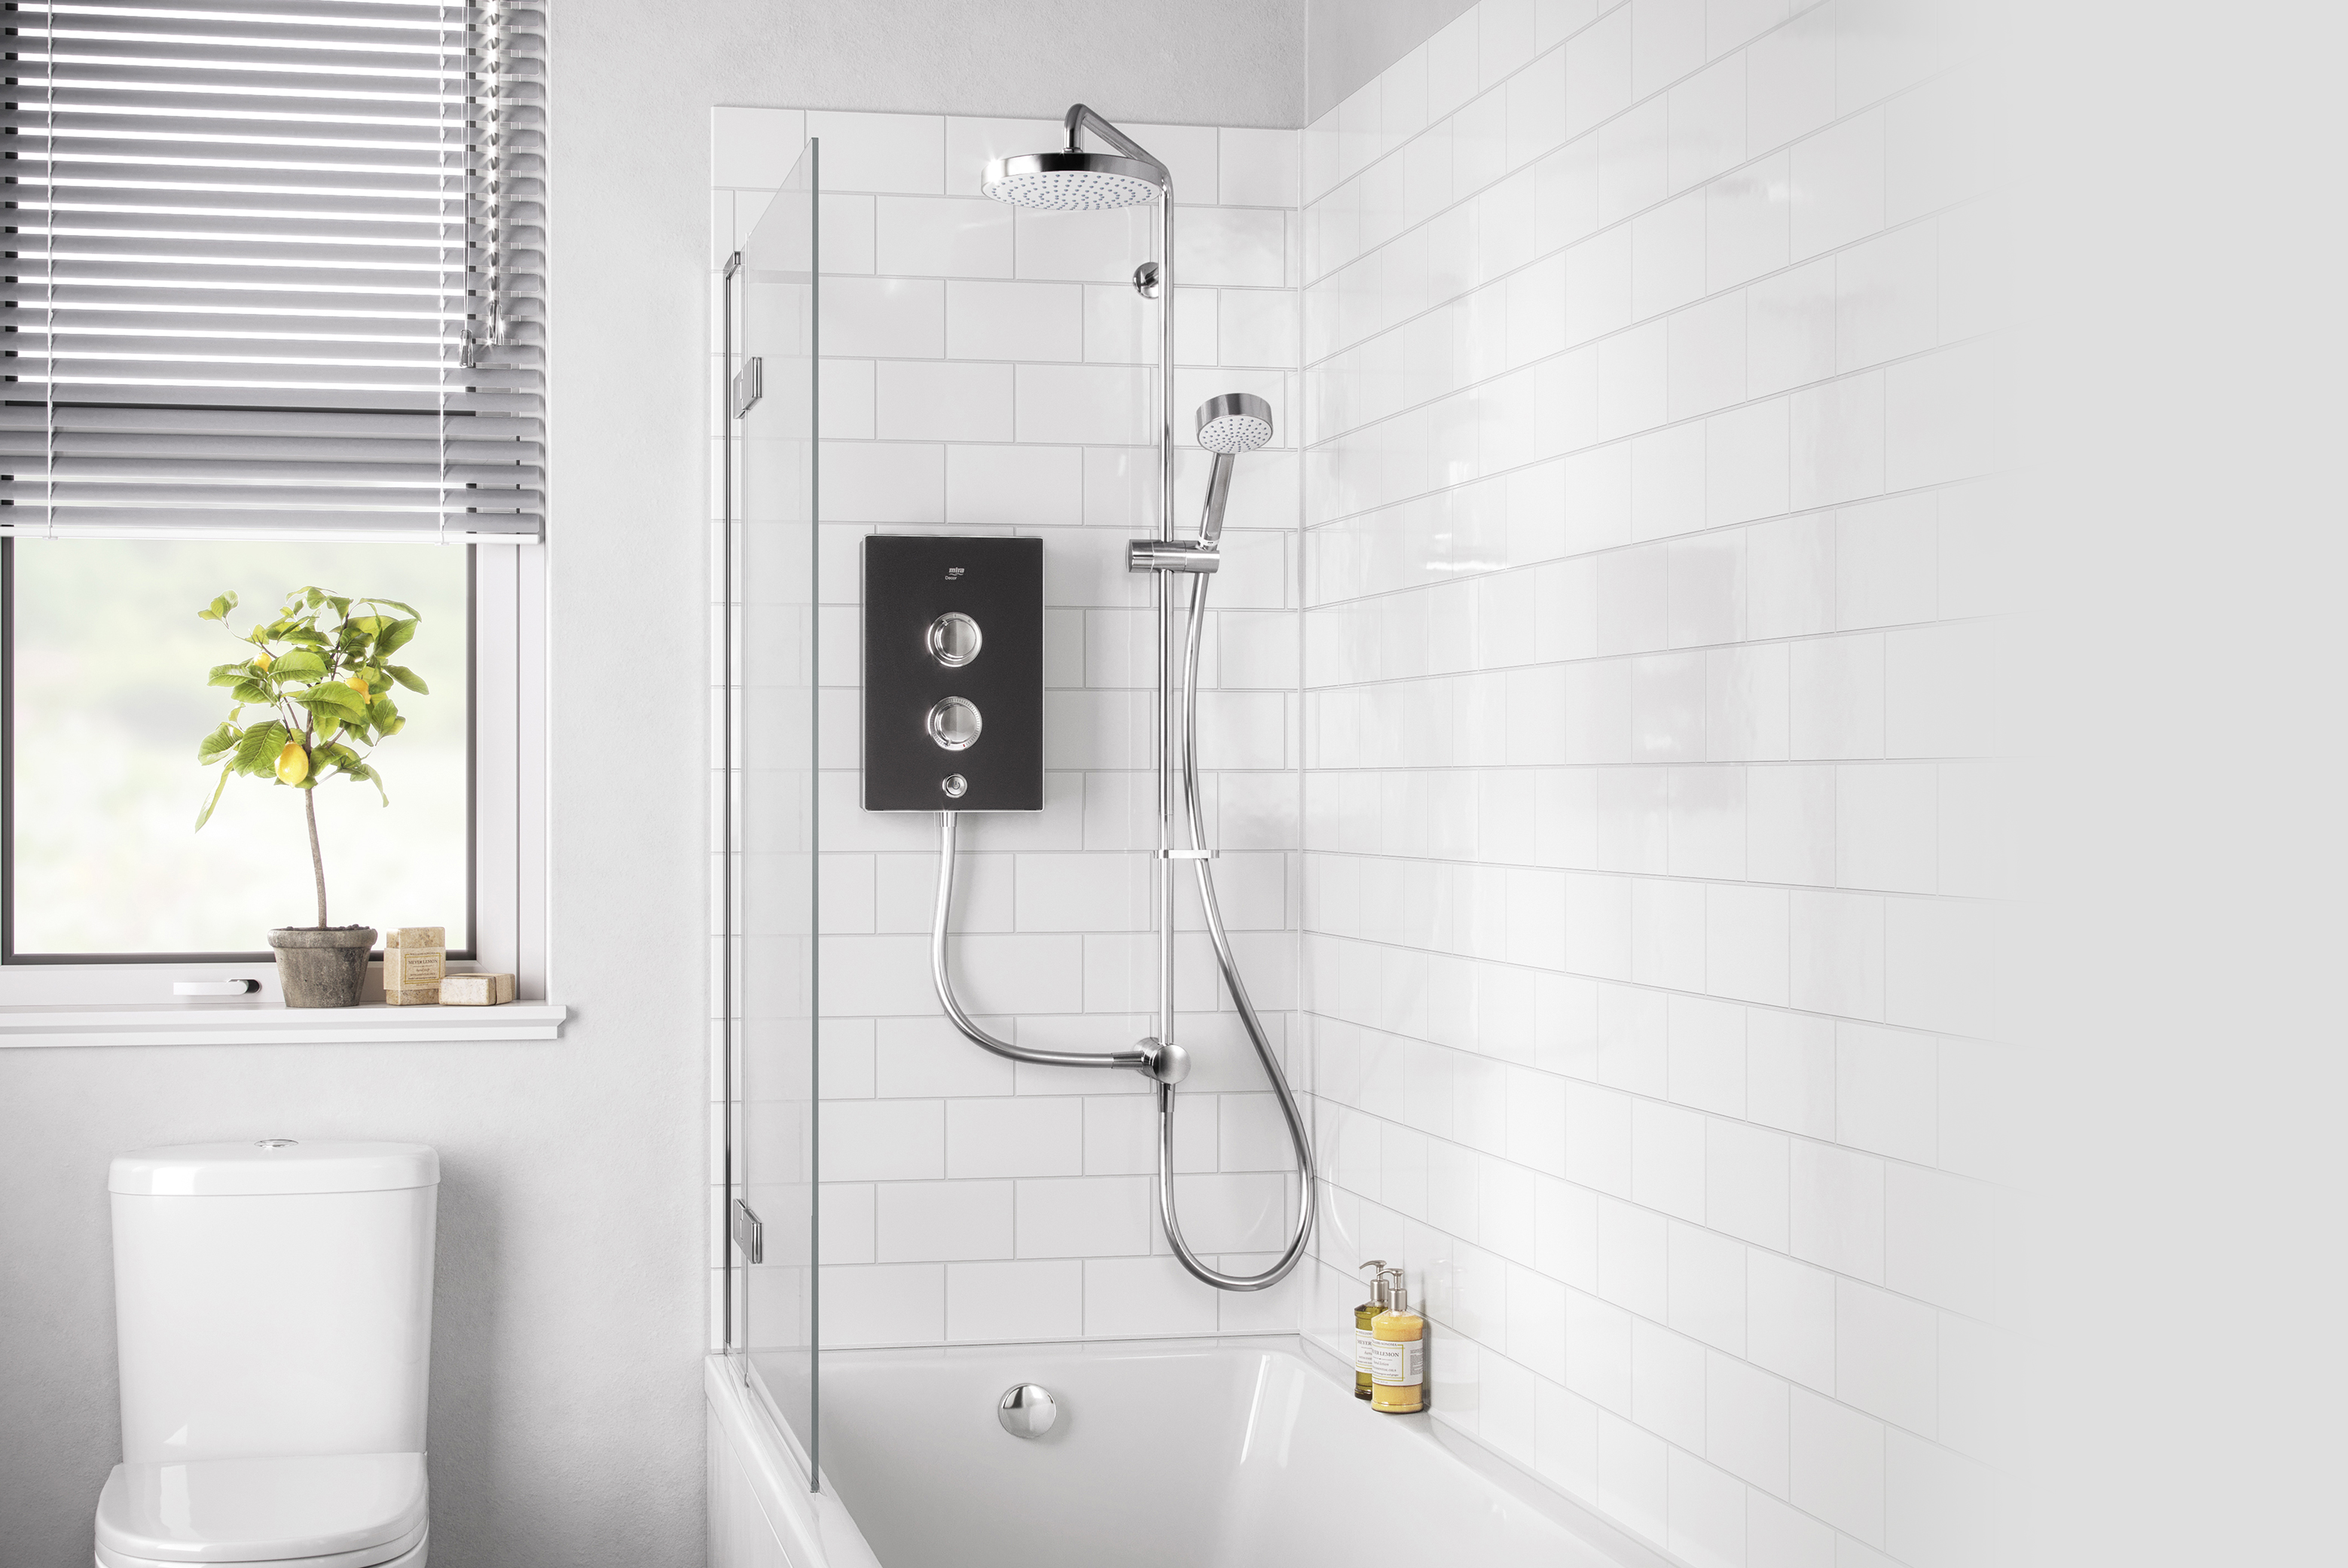 Picture of: How To Clean A Rainfall Shower Head By Mira Showers